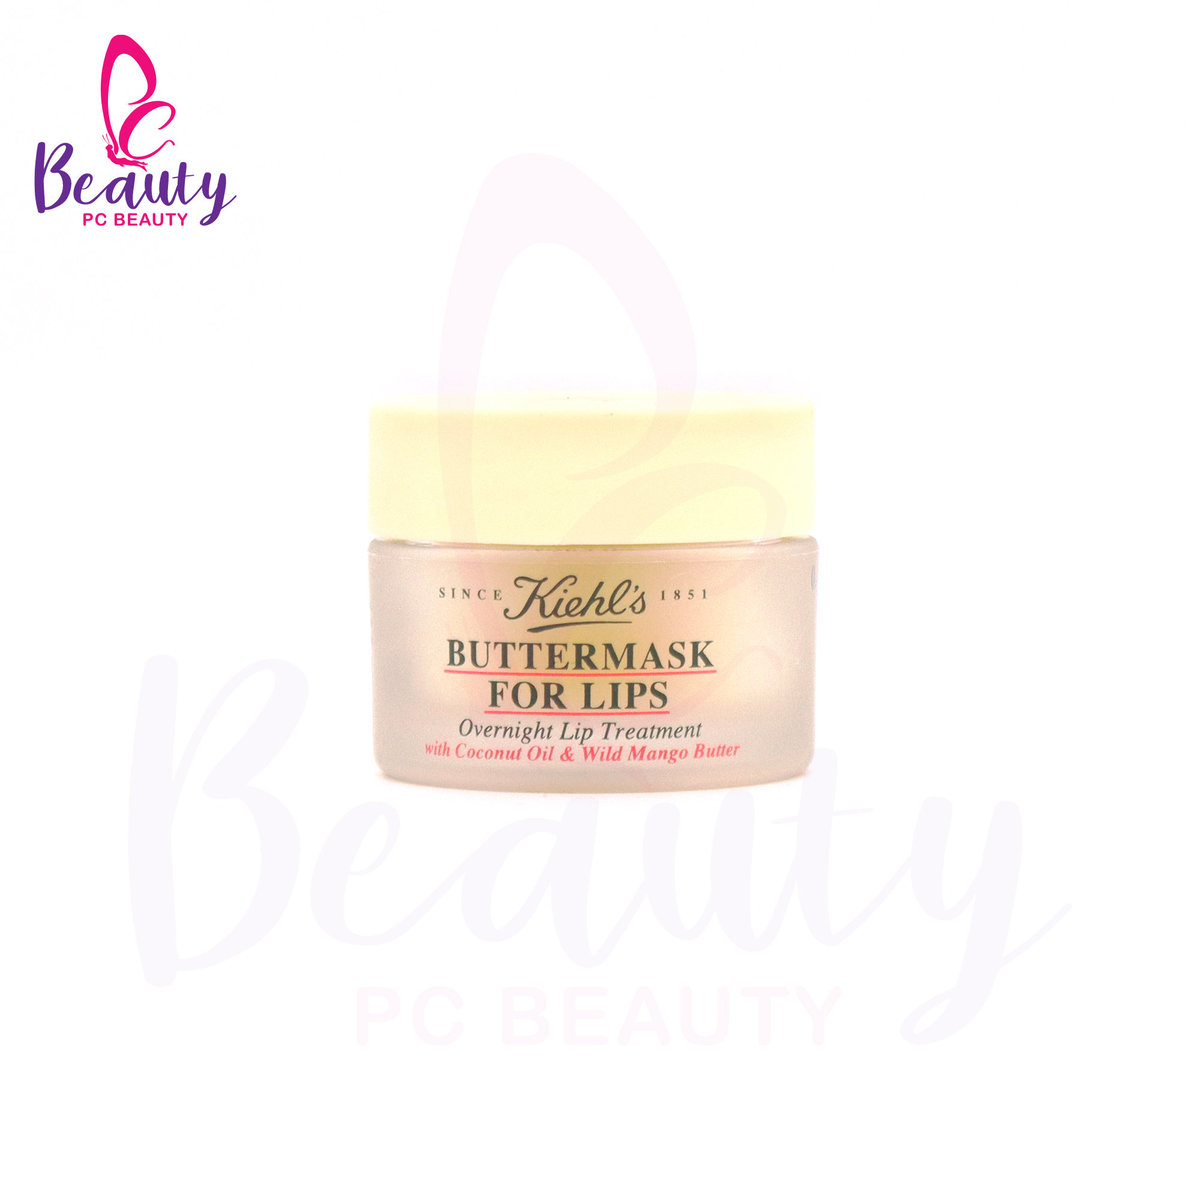 KIEHL'S BUTTERMASK FOR LIPS 10G [Parallel Import Product]